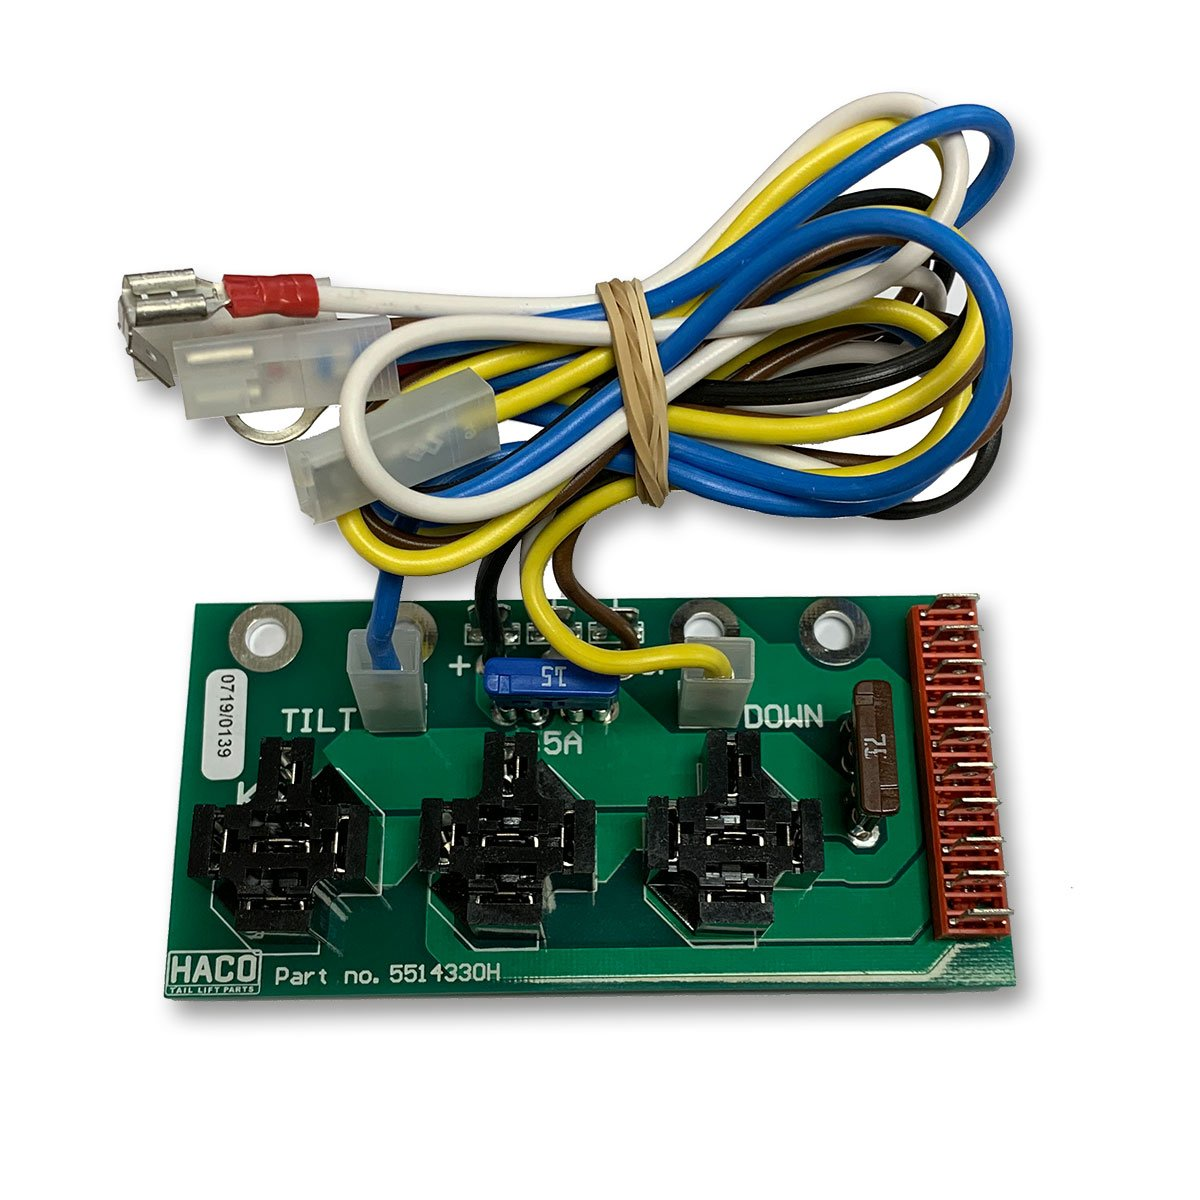 Printed Wiring Board Technology